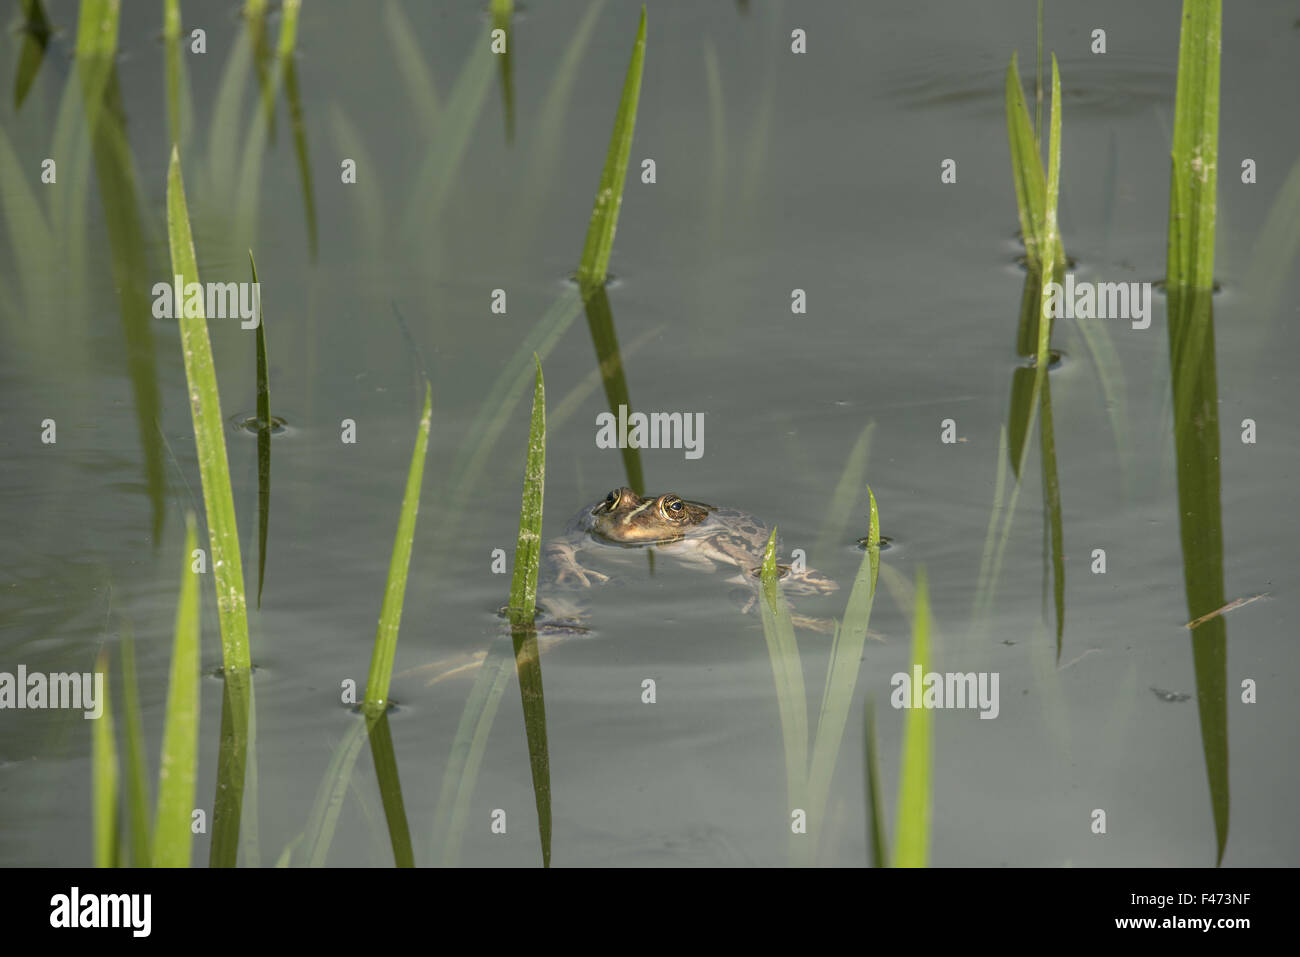 Edible frog, also common water frog or green frog (Rana esculenta) swimming in pond, North Rhine-Westphalia, Germany - Stock Image